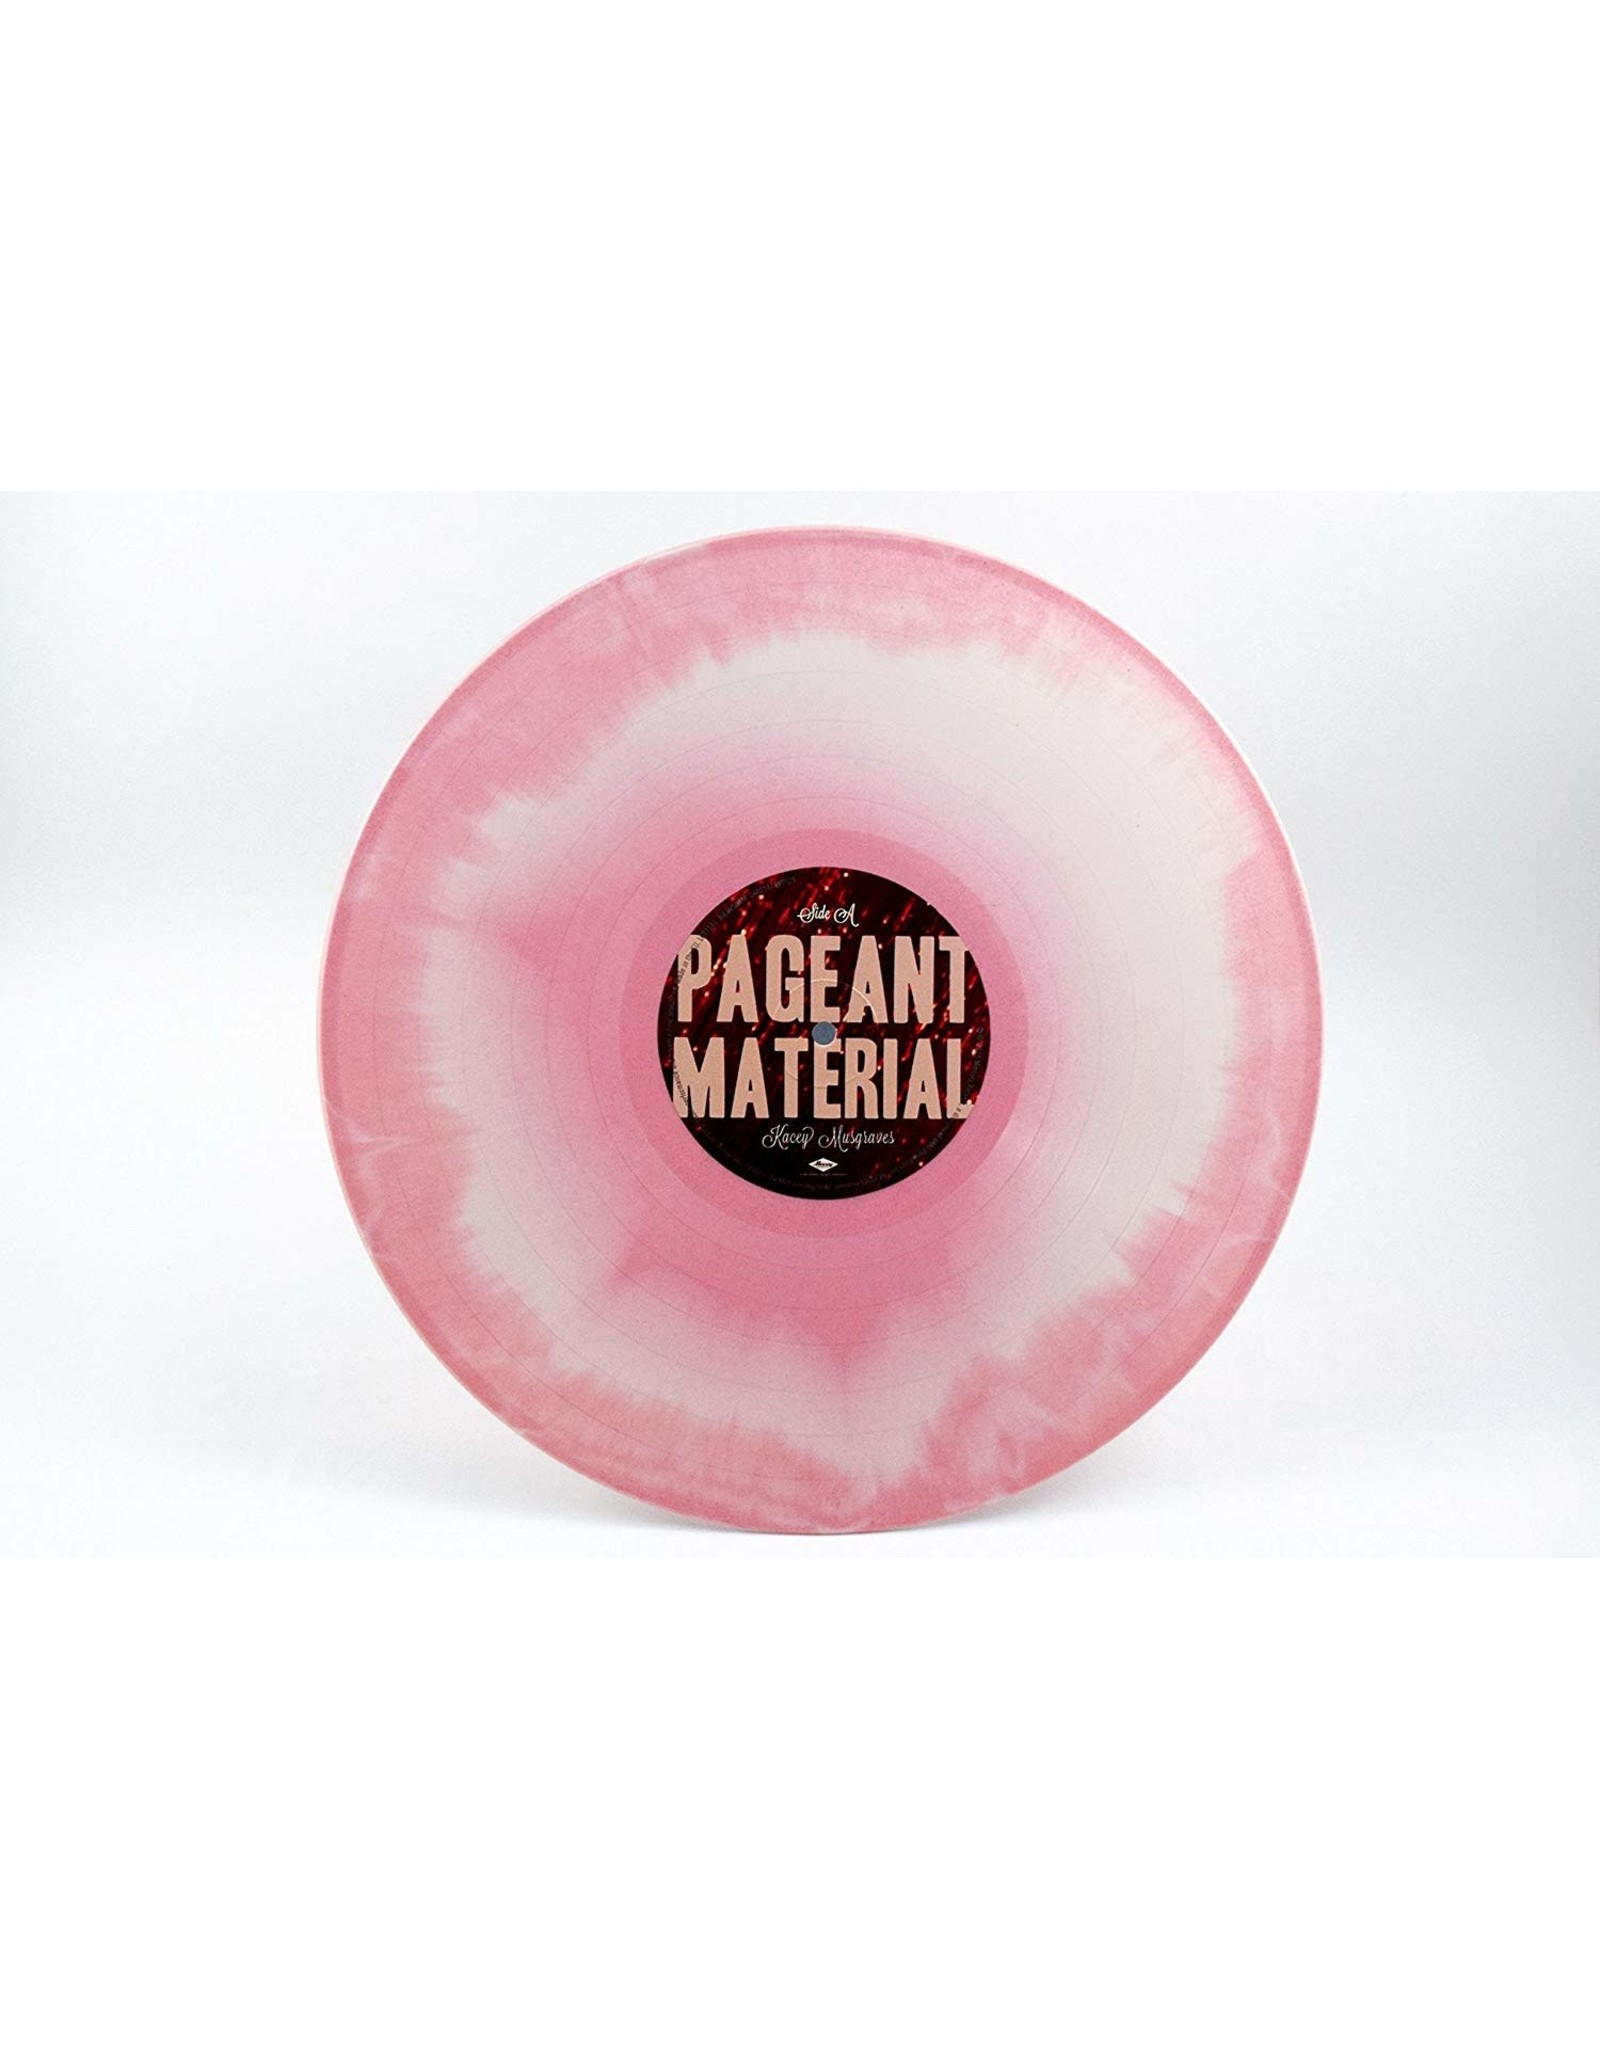 Kacey Musgraves - Pageant Material (Pink Marble Vinyl)